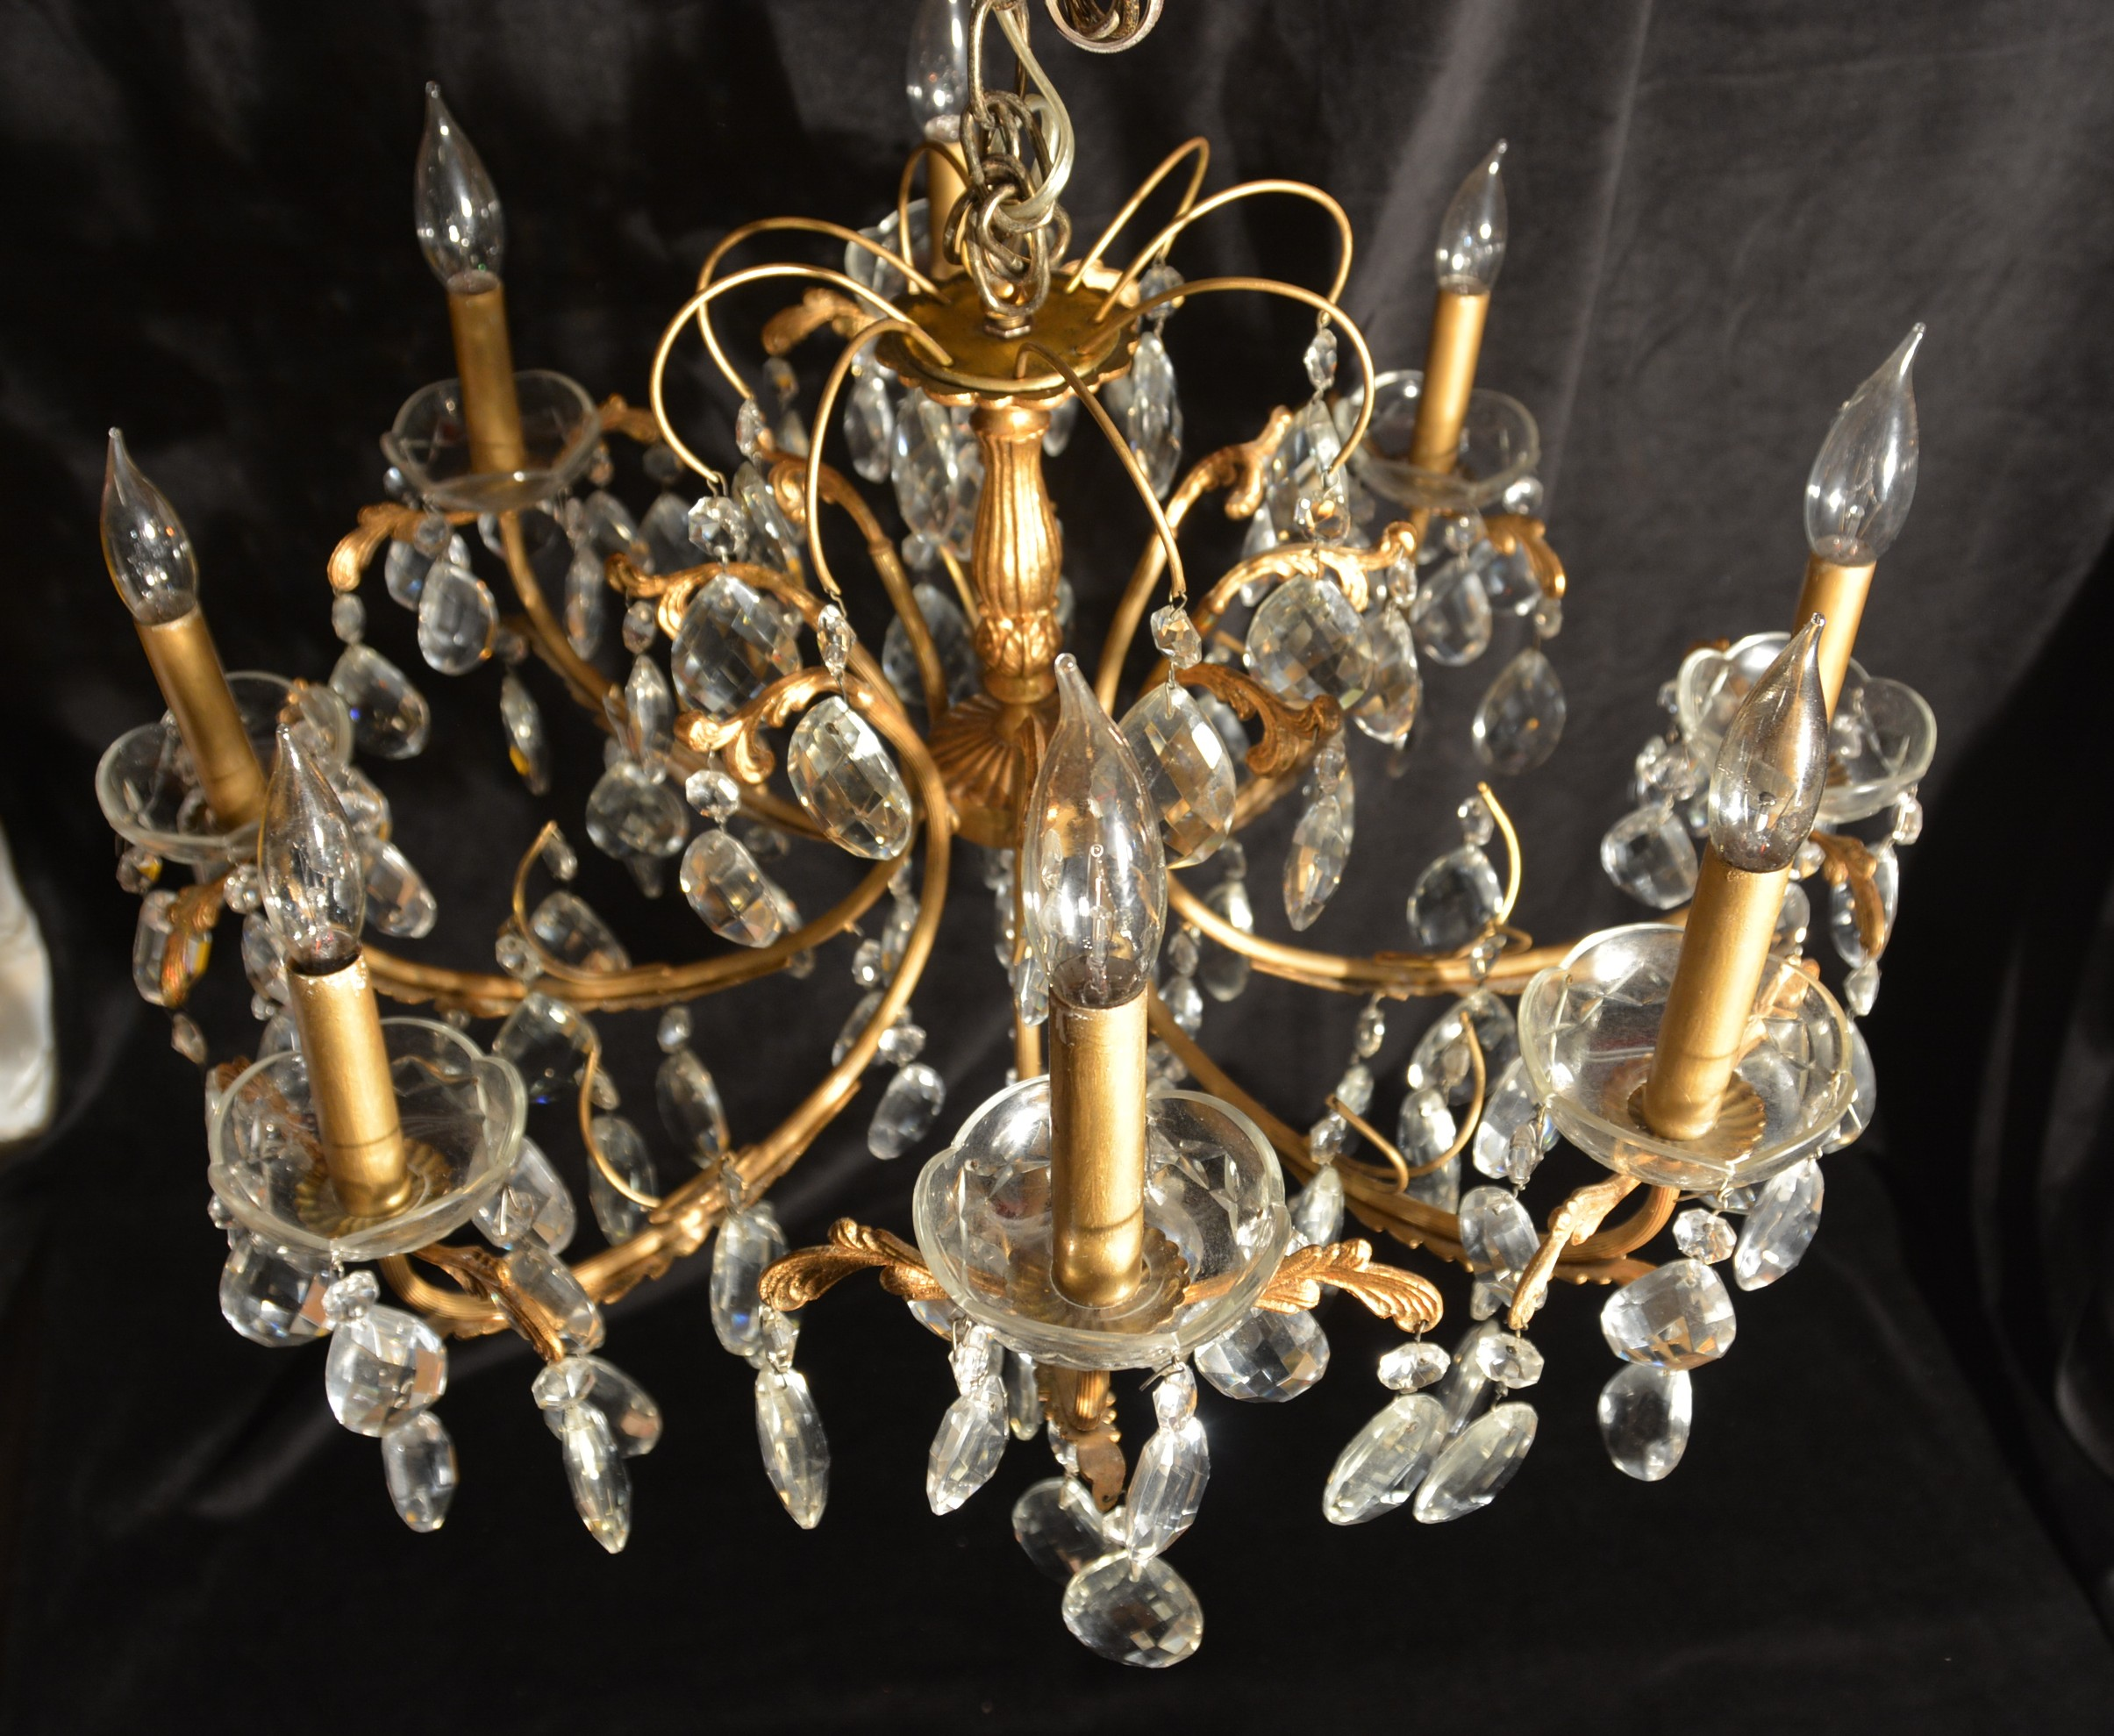 8 light french gold bronze crystal chandelier for sale antiques antique french gold bronze crystal chandelier this impressive chandelier with multi faceted pear shaped crystals has been loved and cared for by our family arubaitofo Choice Image